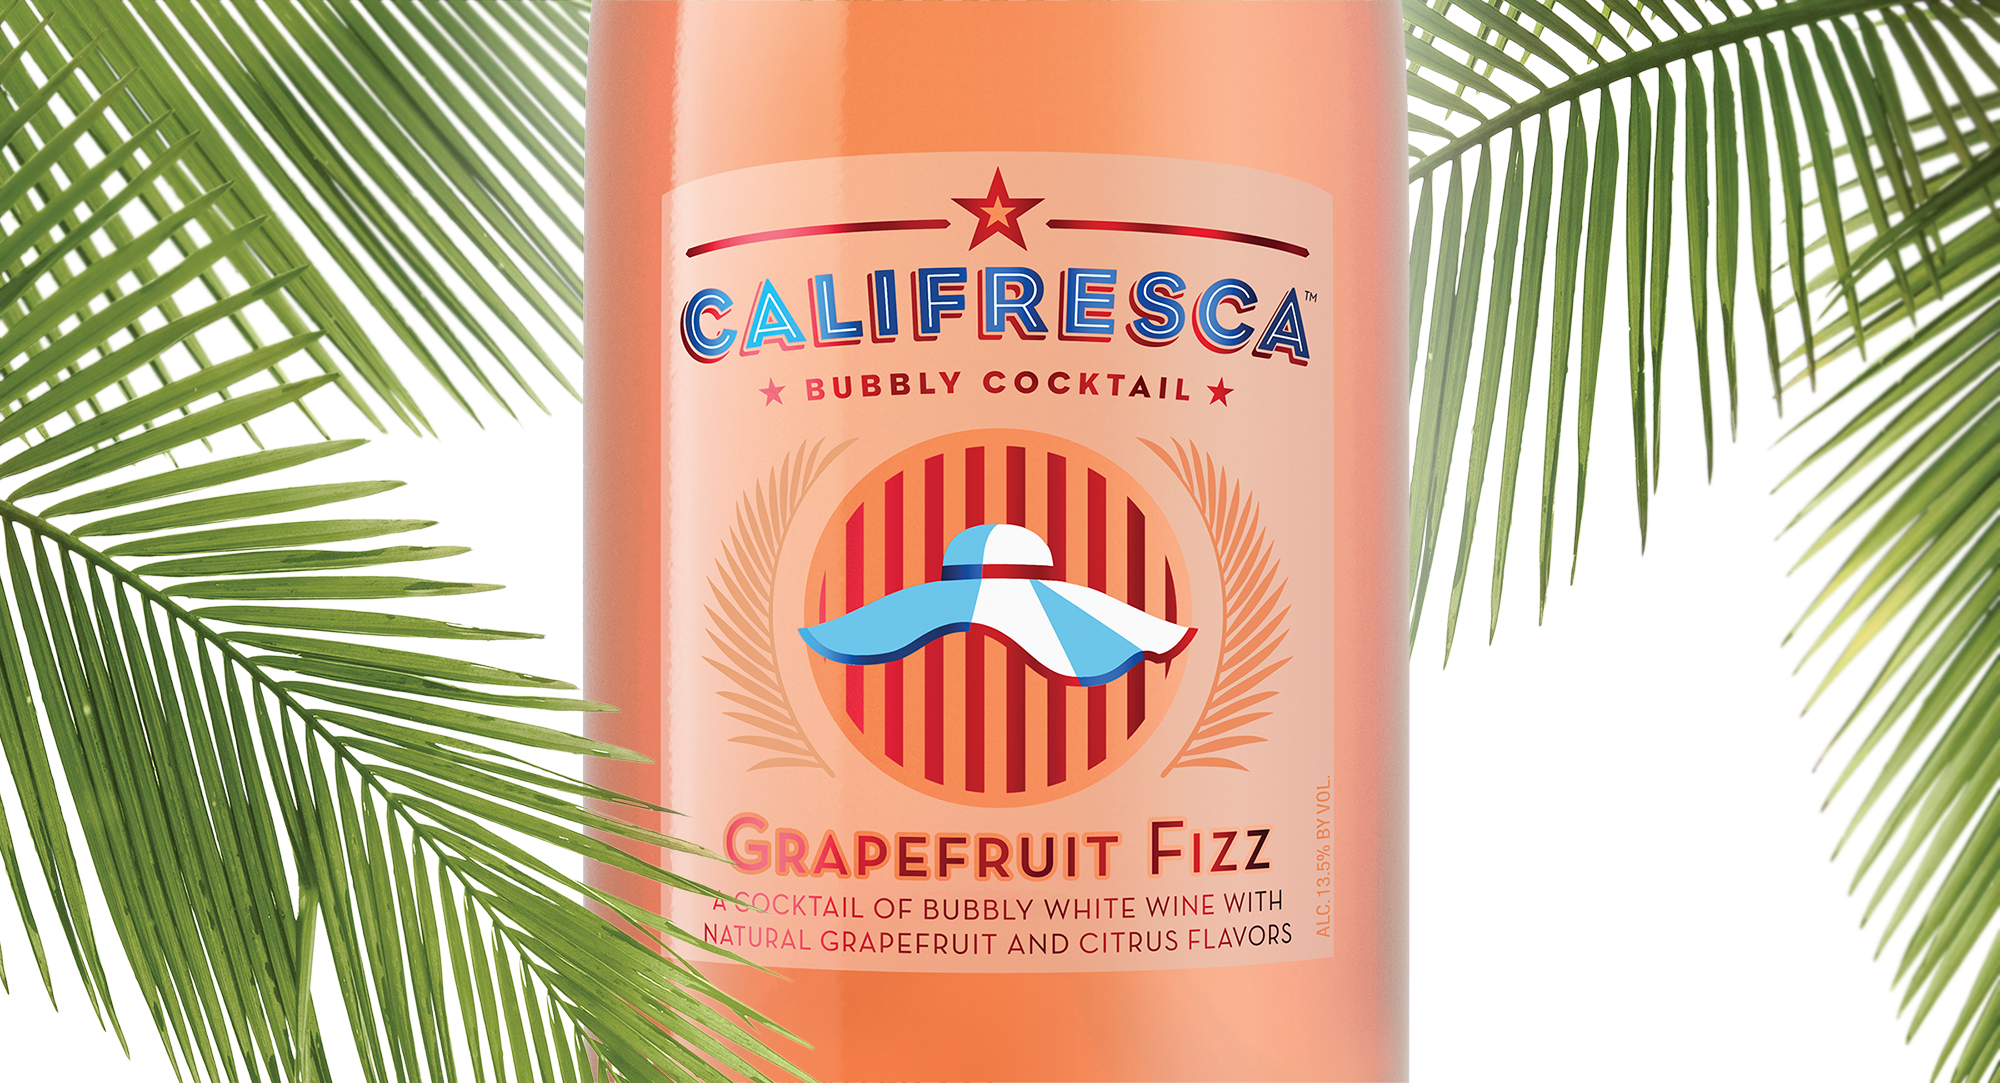 Califresca Bubbly Wine Cocktail brand identity design label detail with palm fronds